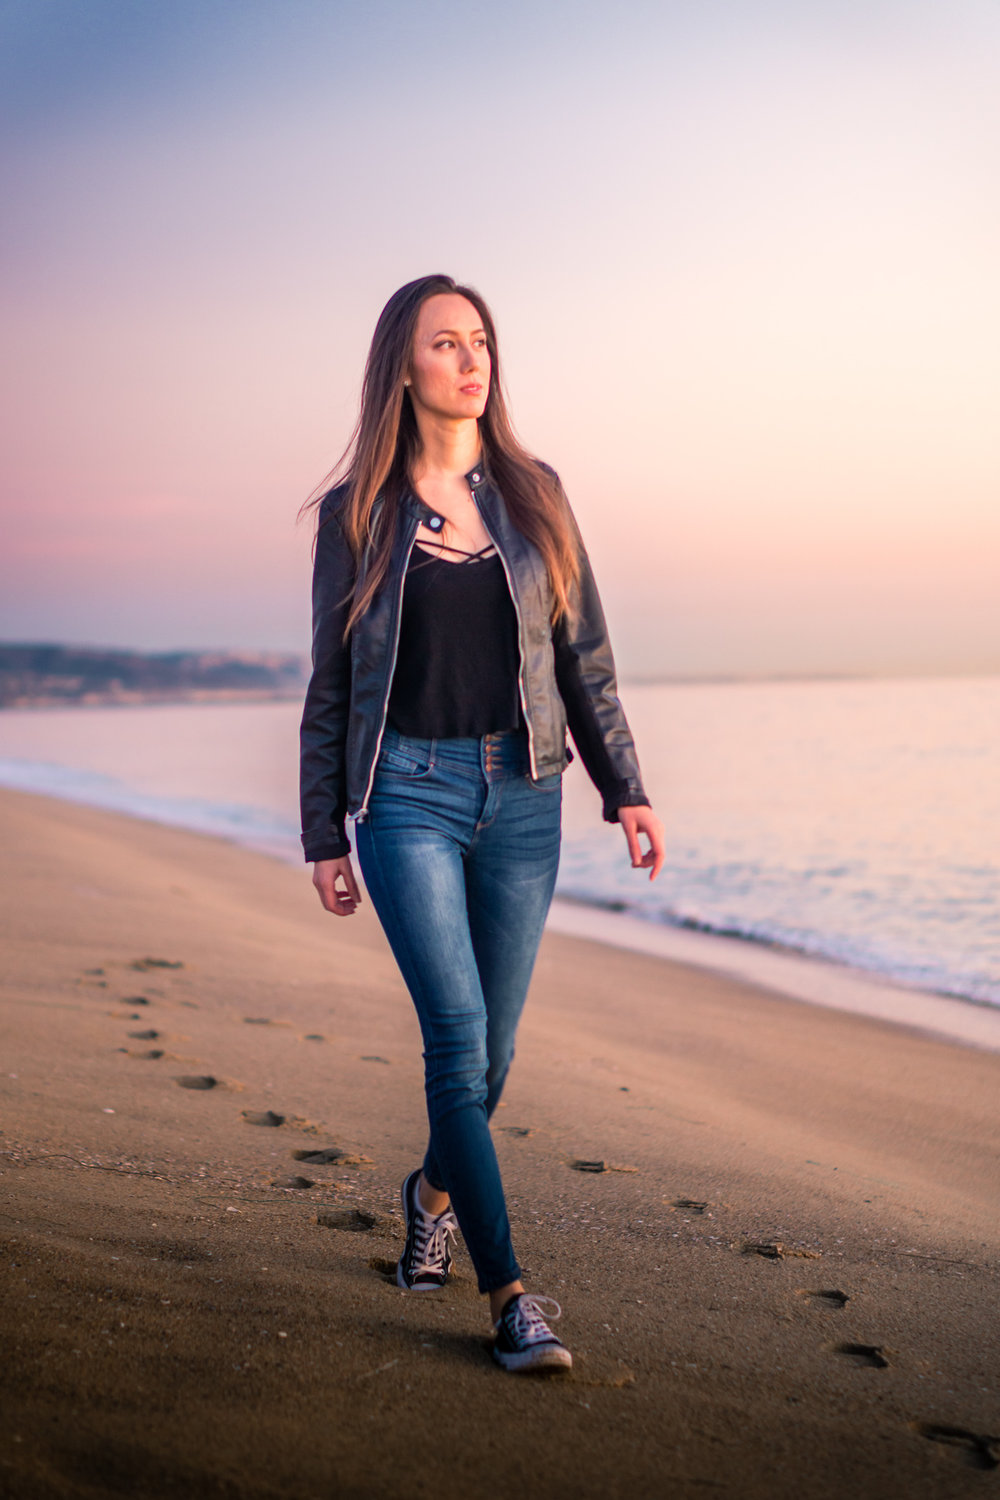 vibrant Natural light Fashion Portrait of woman wearing black leather jacket and blue jeans walking on beach during Golden hour At Balboa Pier in Orange County